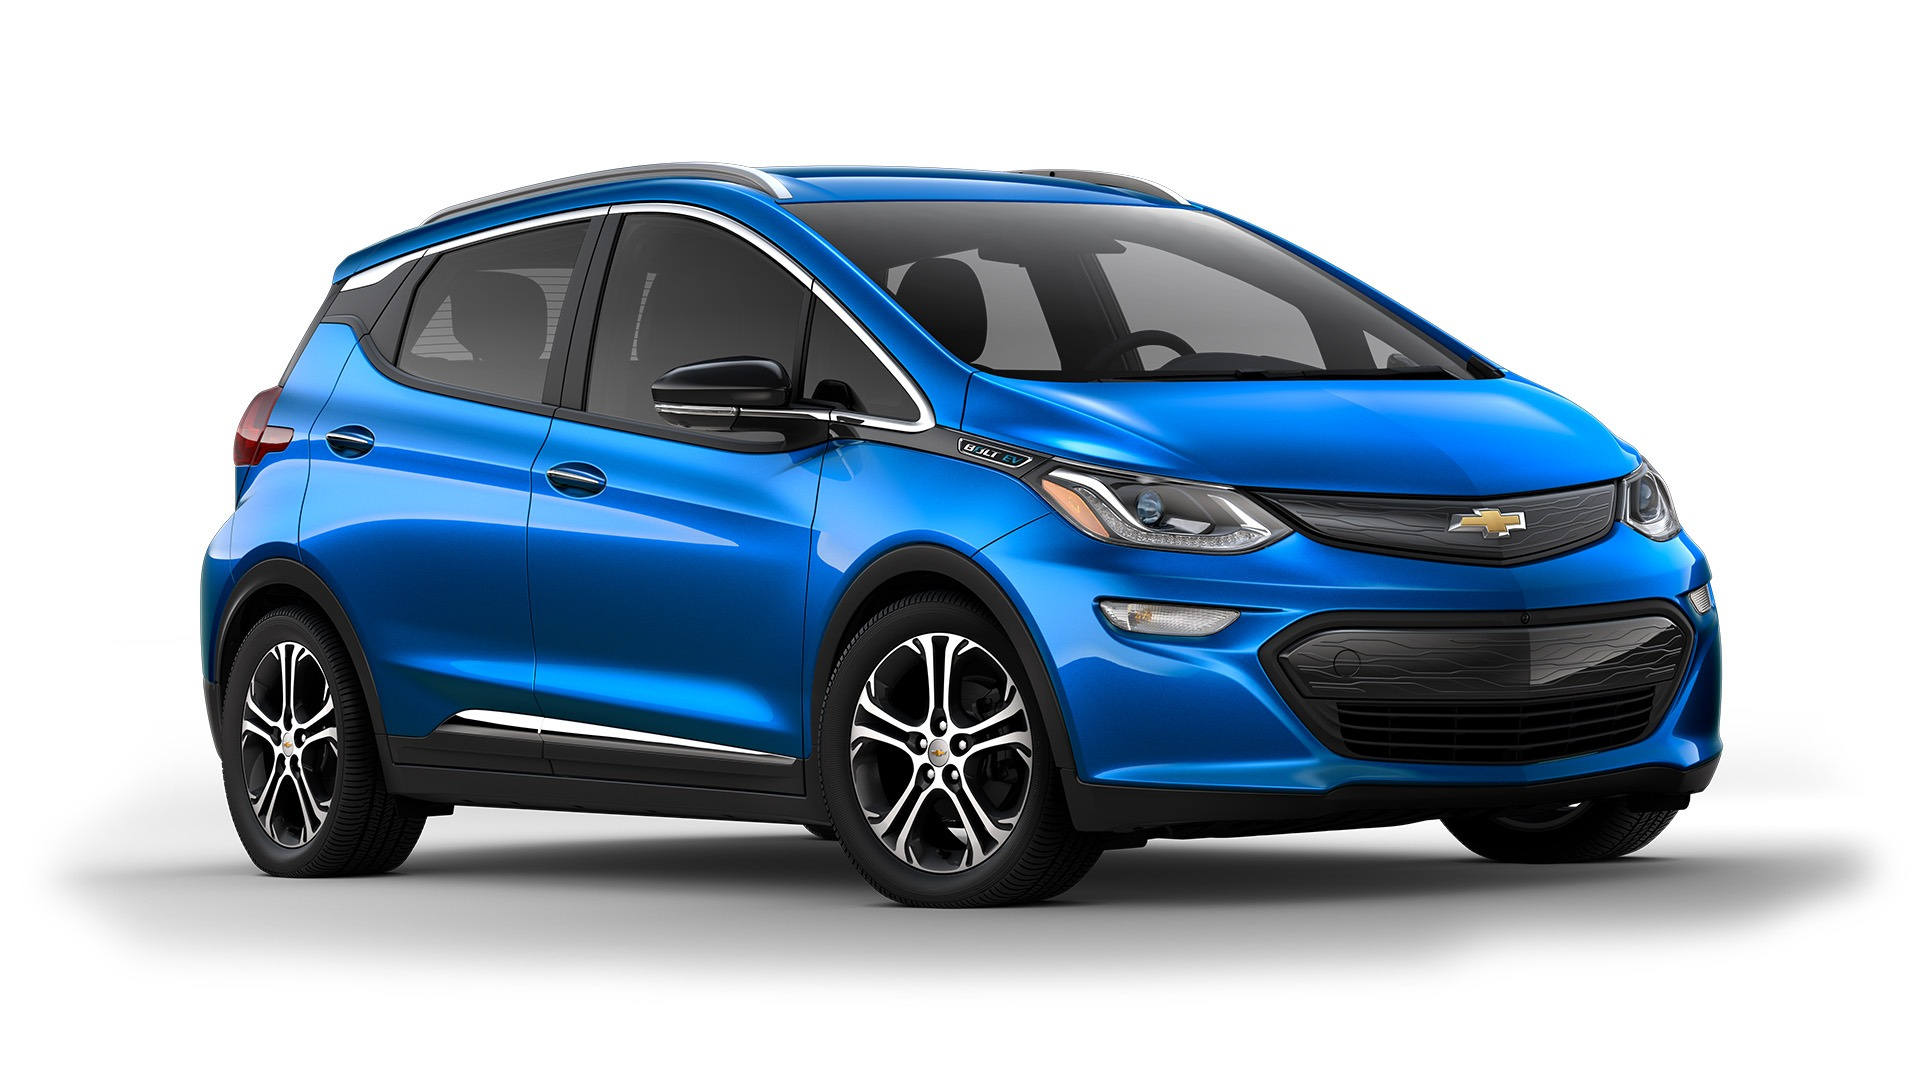 2020 Chevy Bolt front